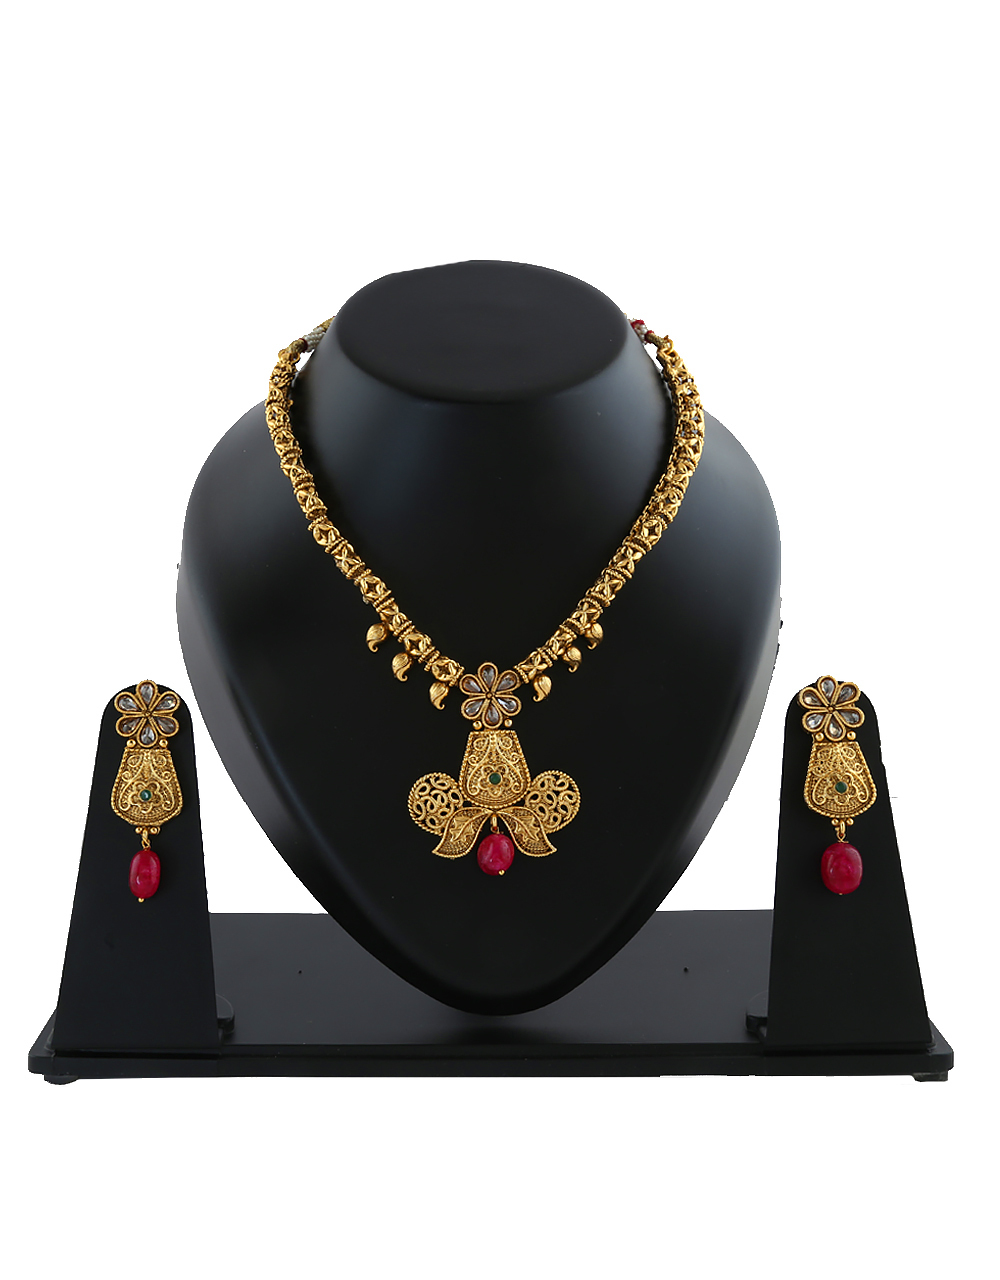 Gold Tone Very Classy Floral Artificial Jewellery Set